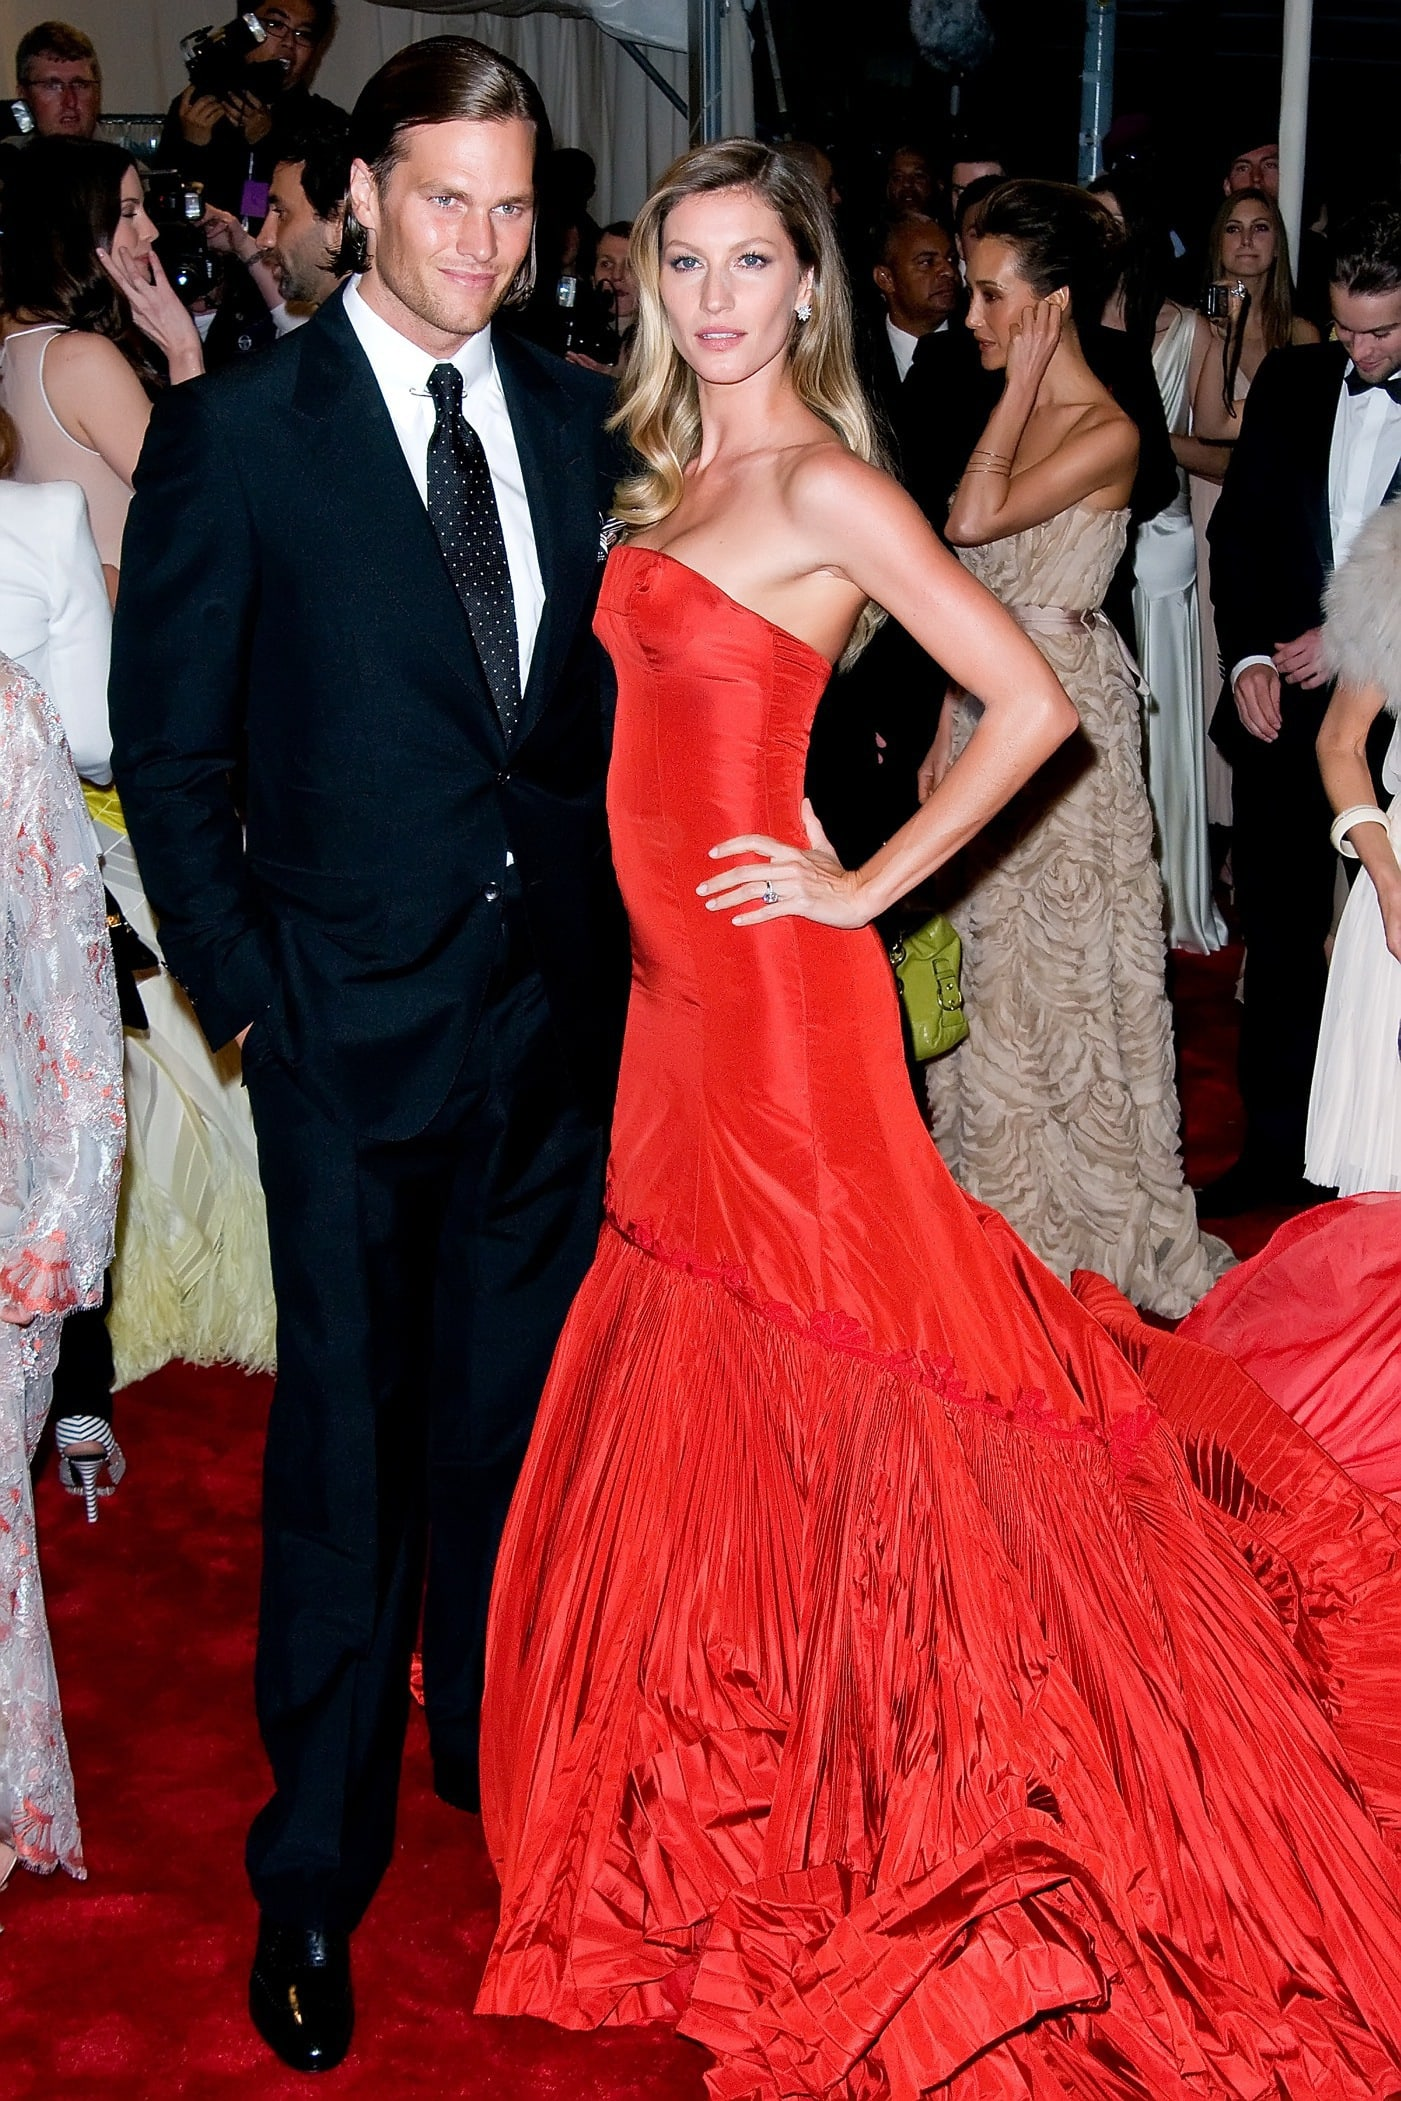 Tom Brady, Gisele Bundchen: Engaged! - The Hollywood Gossip